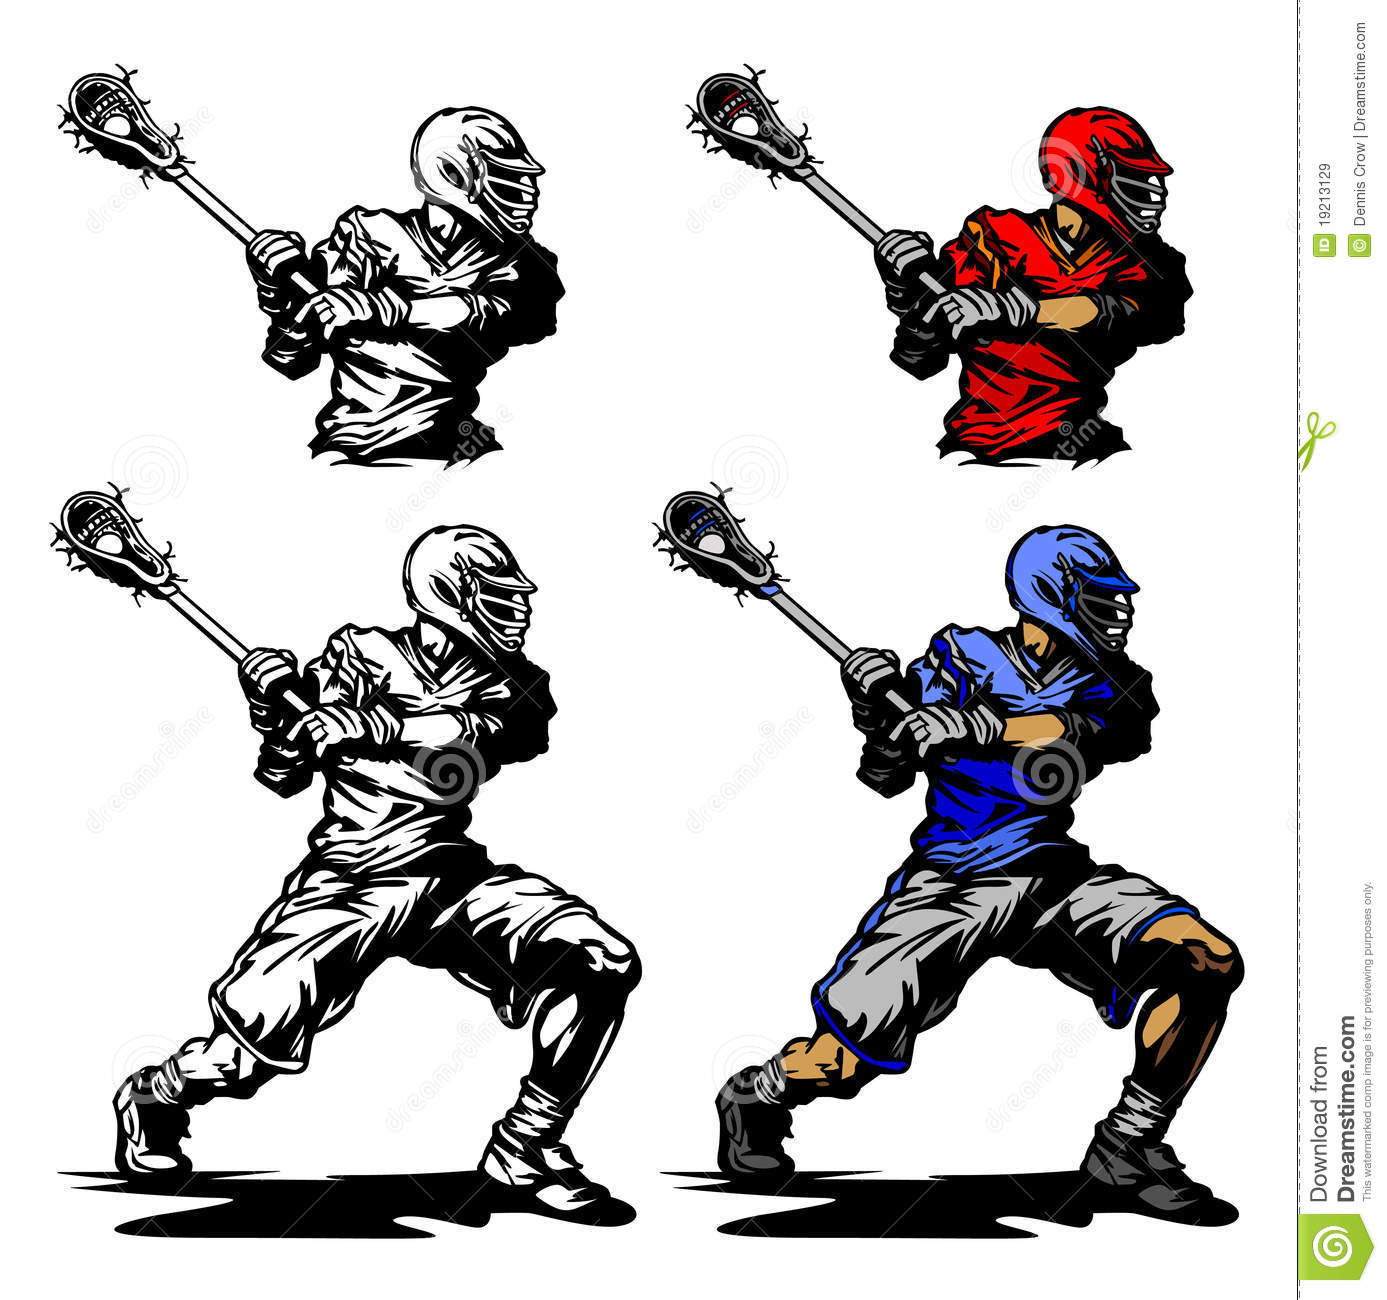 Lacrosse Player Cradling Ball Illustration Royalty Free Stock Images ...